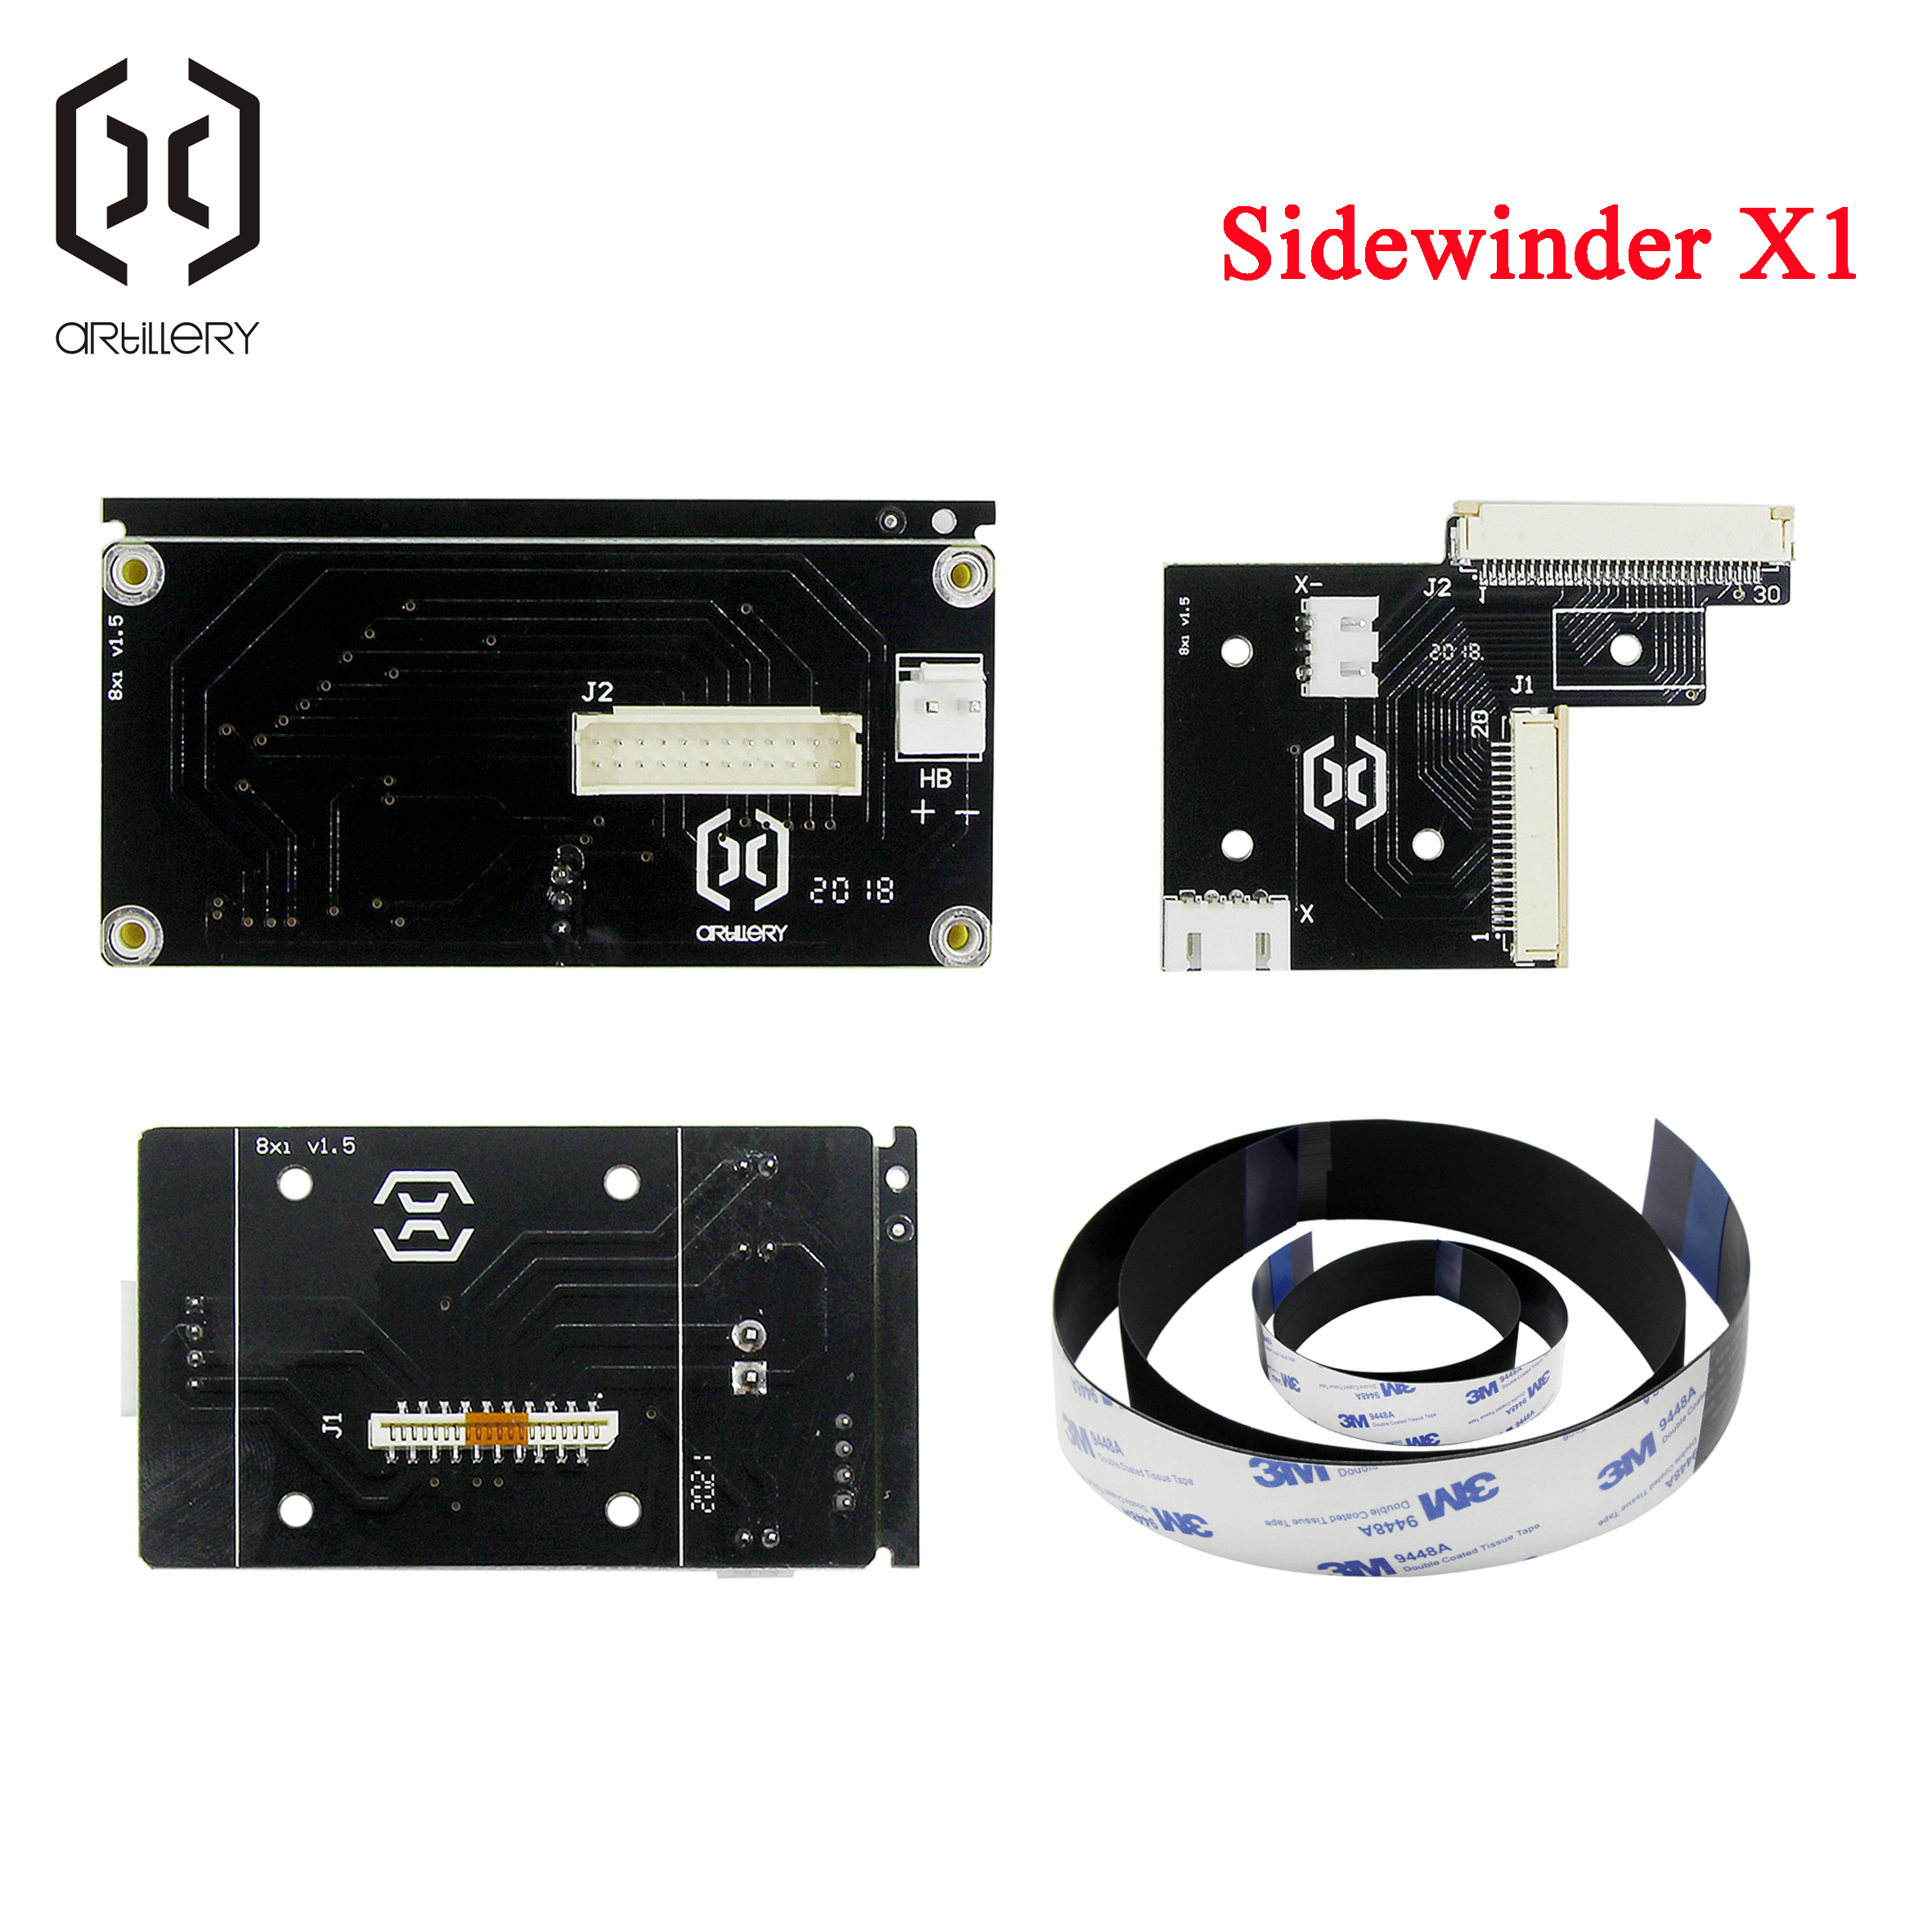 2020  suitable for Artillery 3D printer Sidewinder X1 and GeniusPCB board cable kit